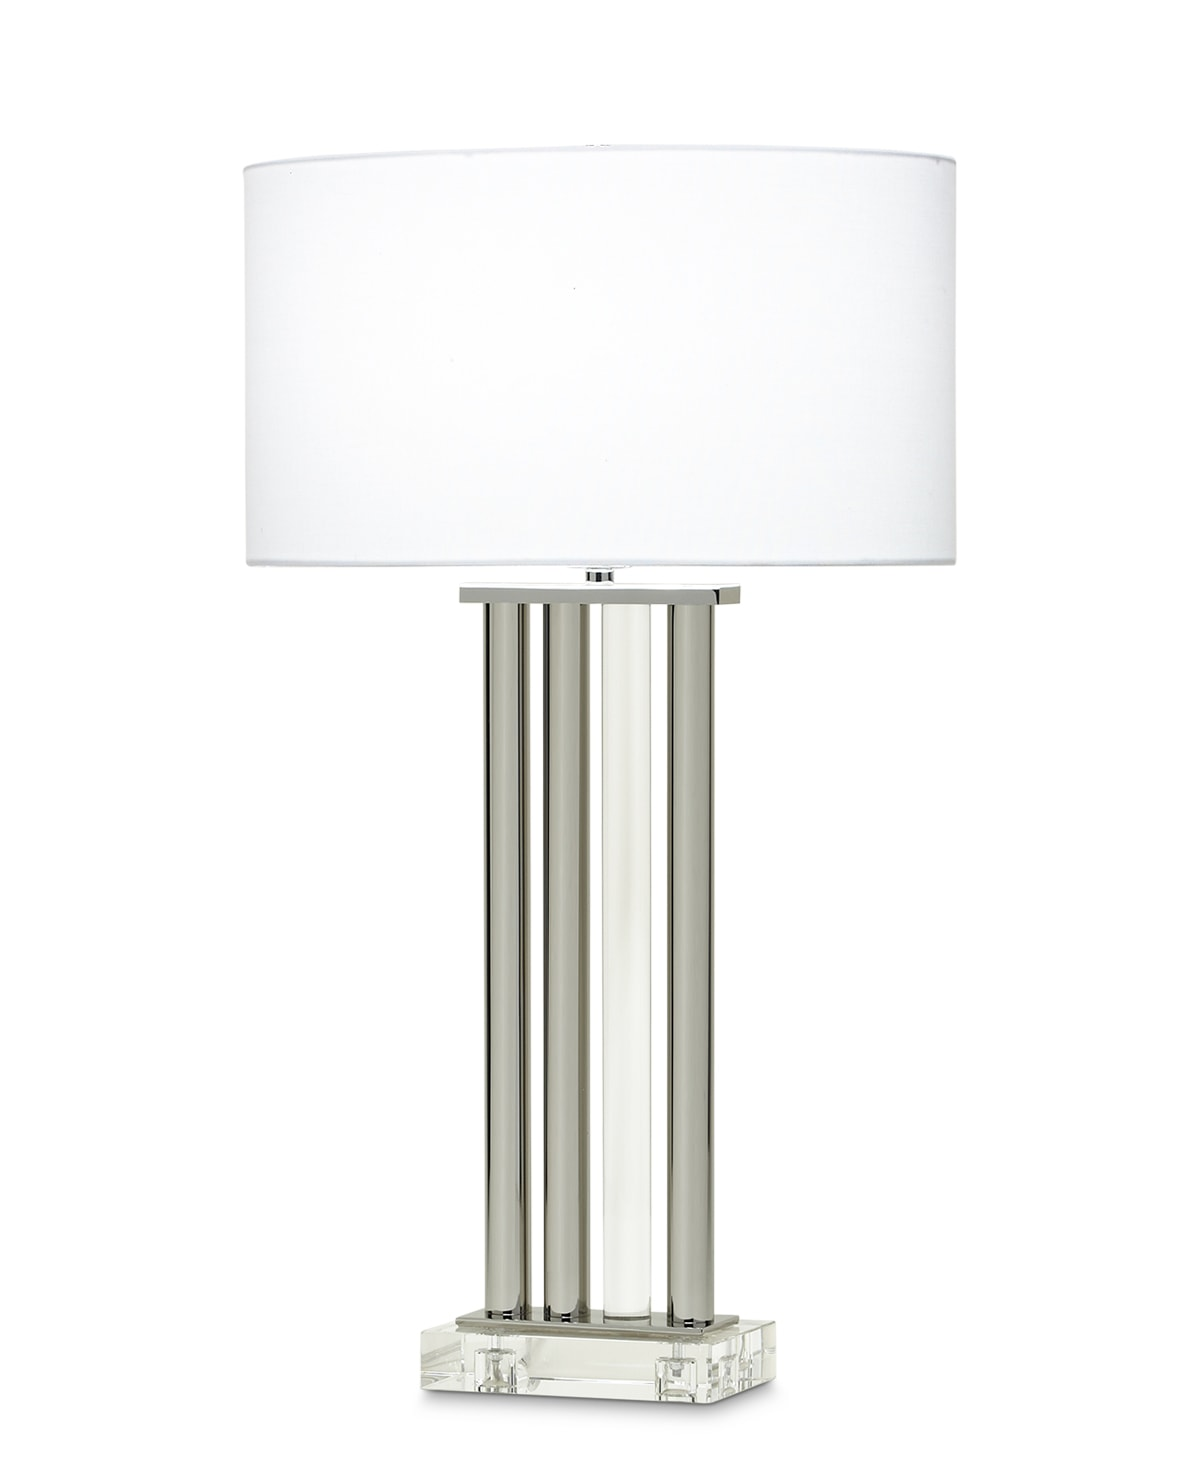 FlowDecor Lewis Table Lamp in metal with polished nickel finish and crystal and white linen oval shade (# 3766)